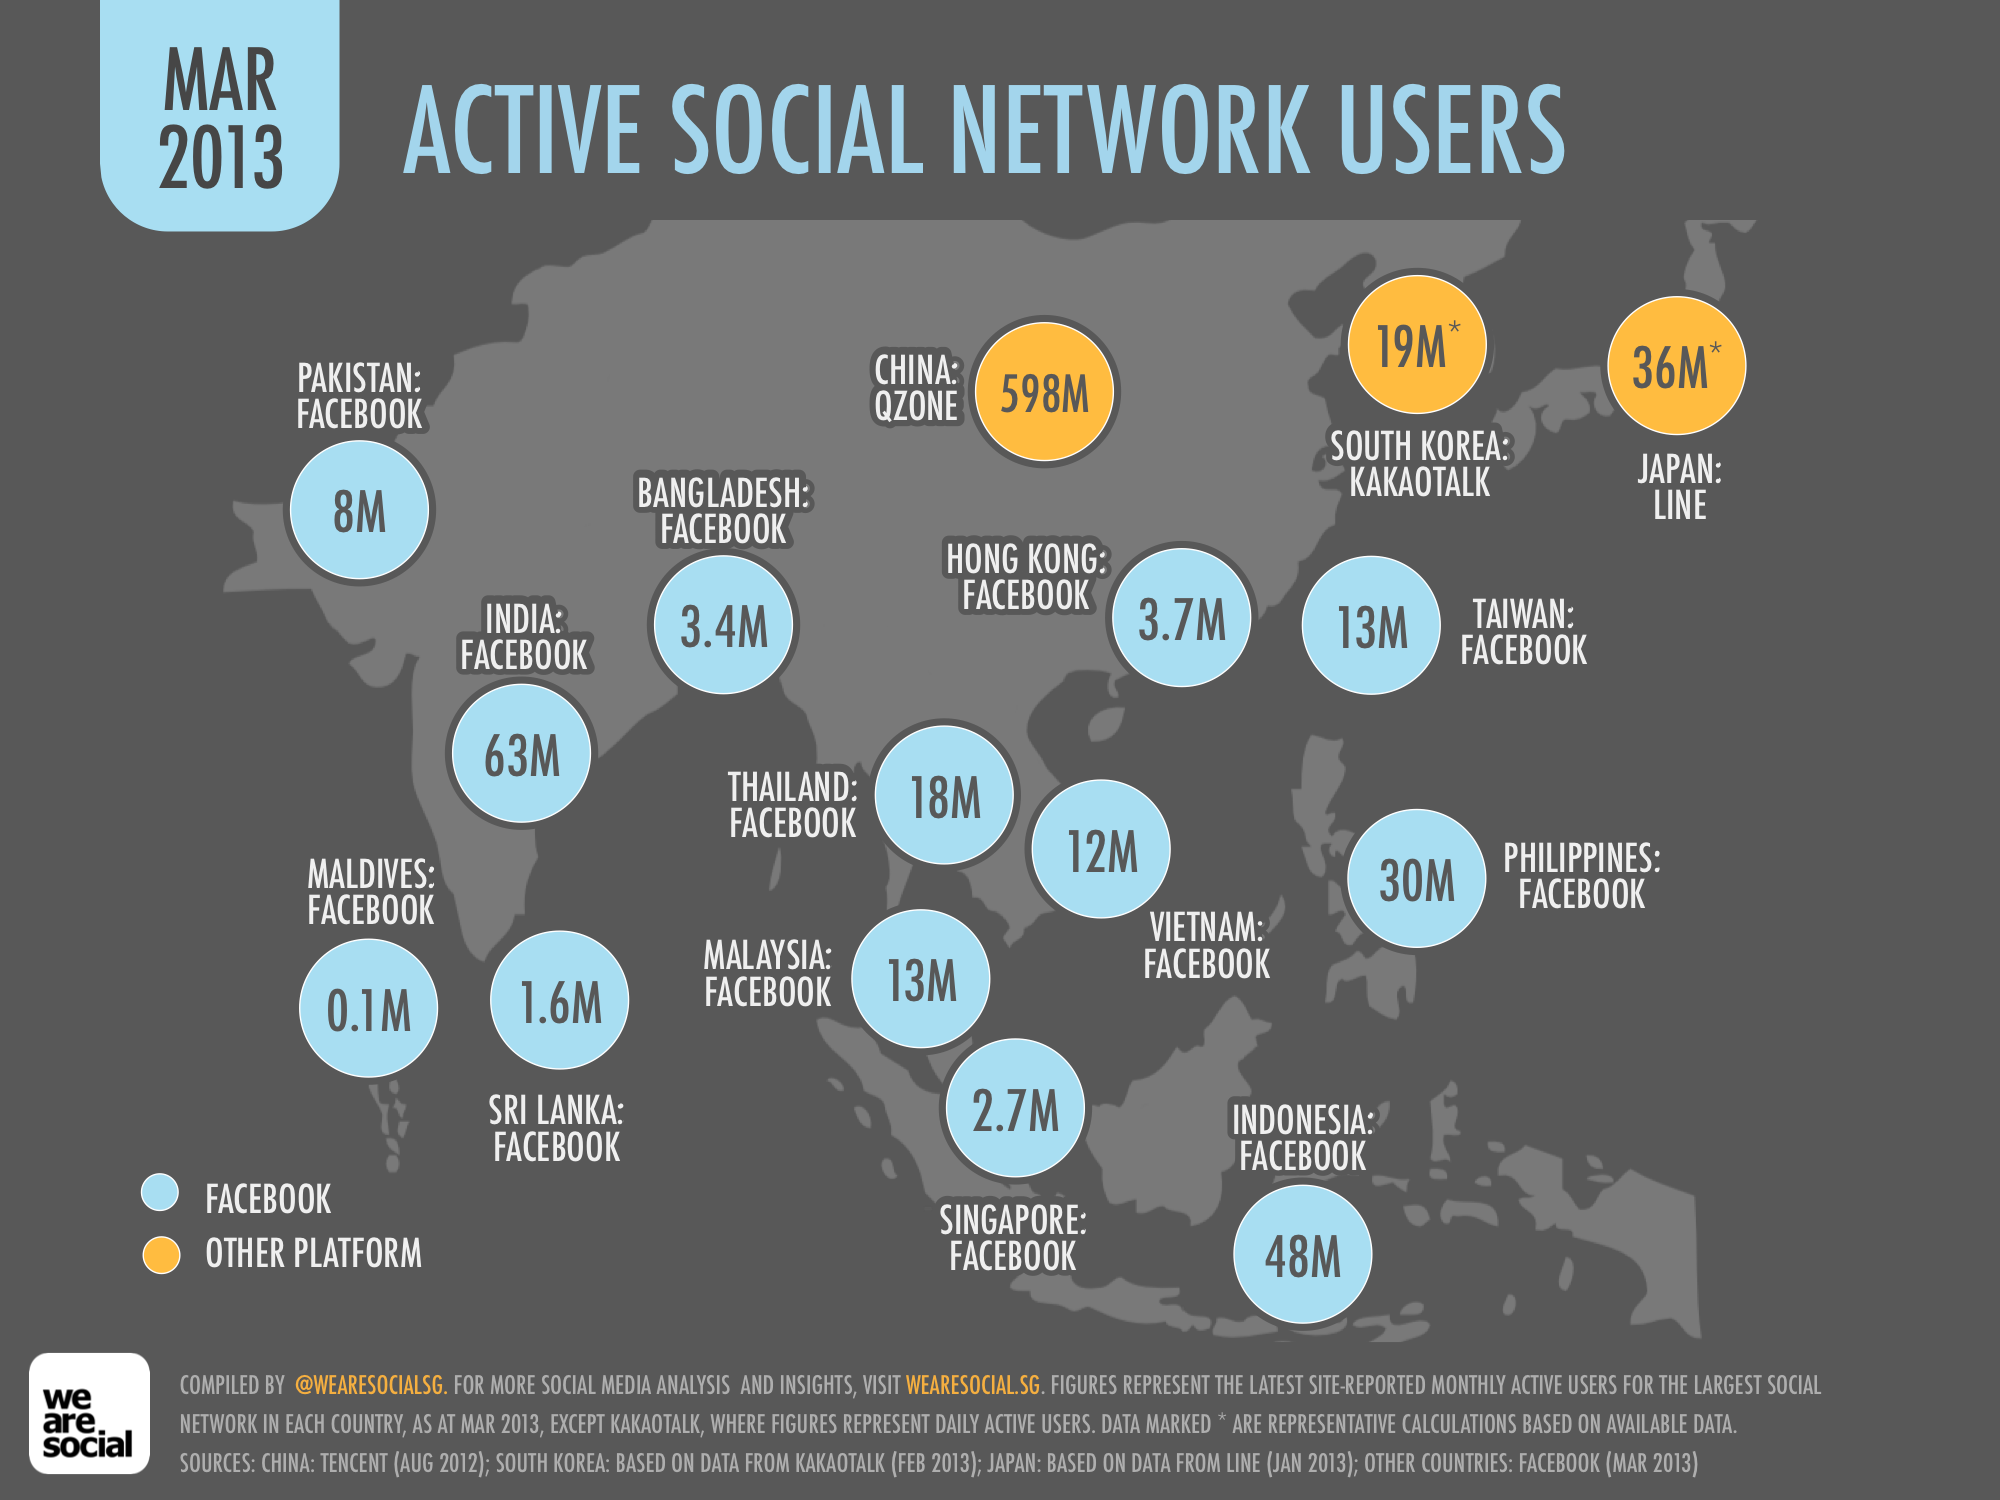 Mobile Chat Apps Ahead of Social Networks in Japan and Korea